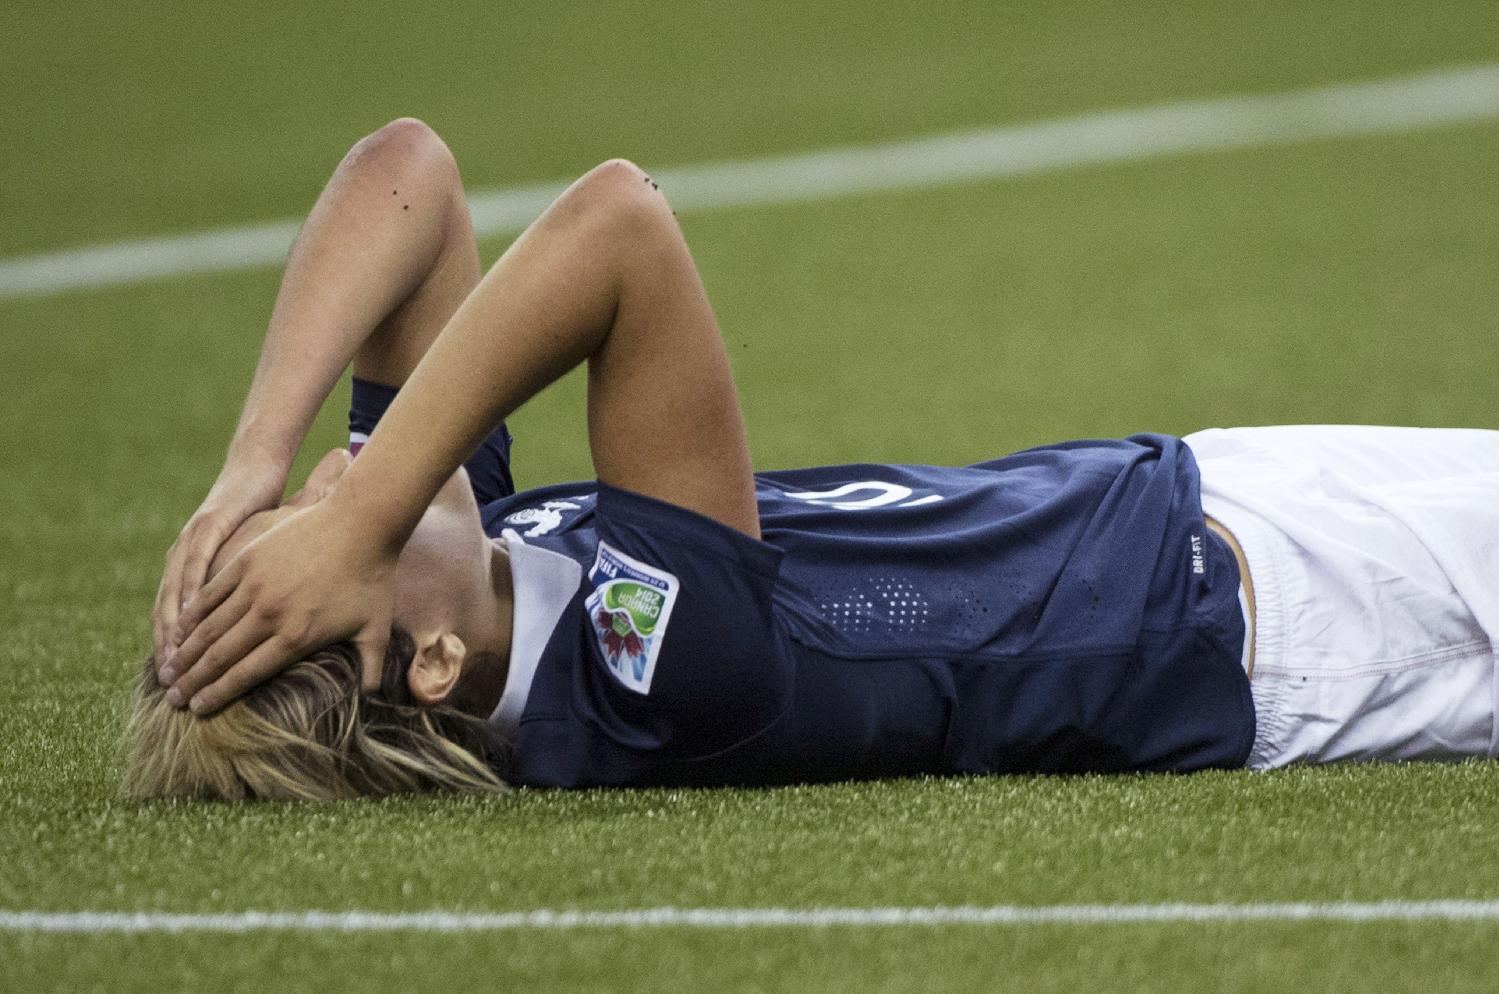 France's Claire Lavogez lies on the pitch after missing a scoring opportunity against Germany during extra time in the second half of a FIFA U-20 women's World Cup semifinal in Montreal on Wednesday, Aug. 20, 2014. Germany won 2-1